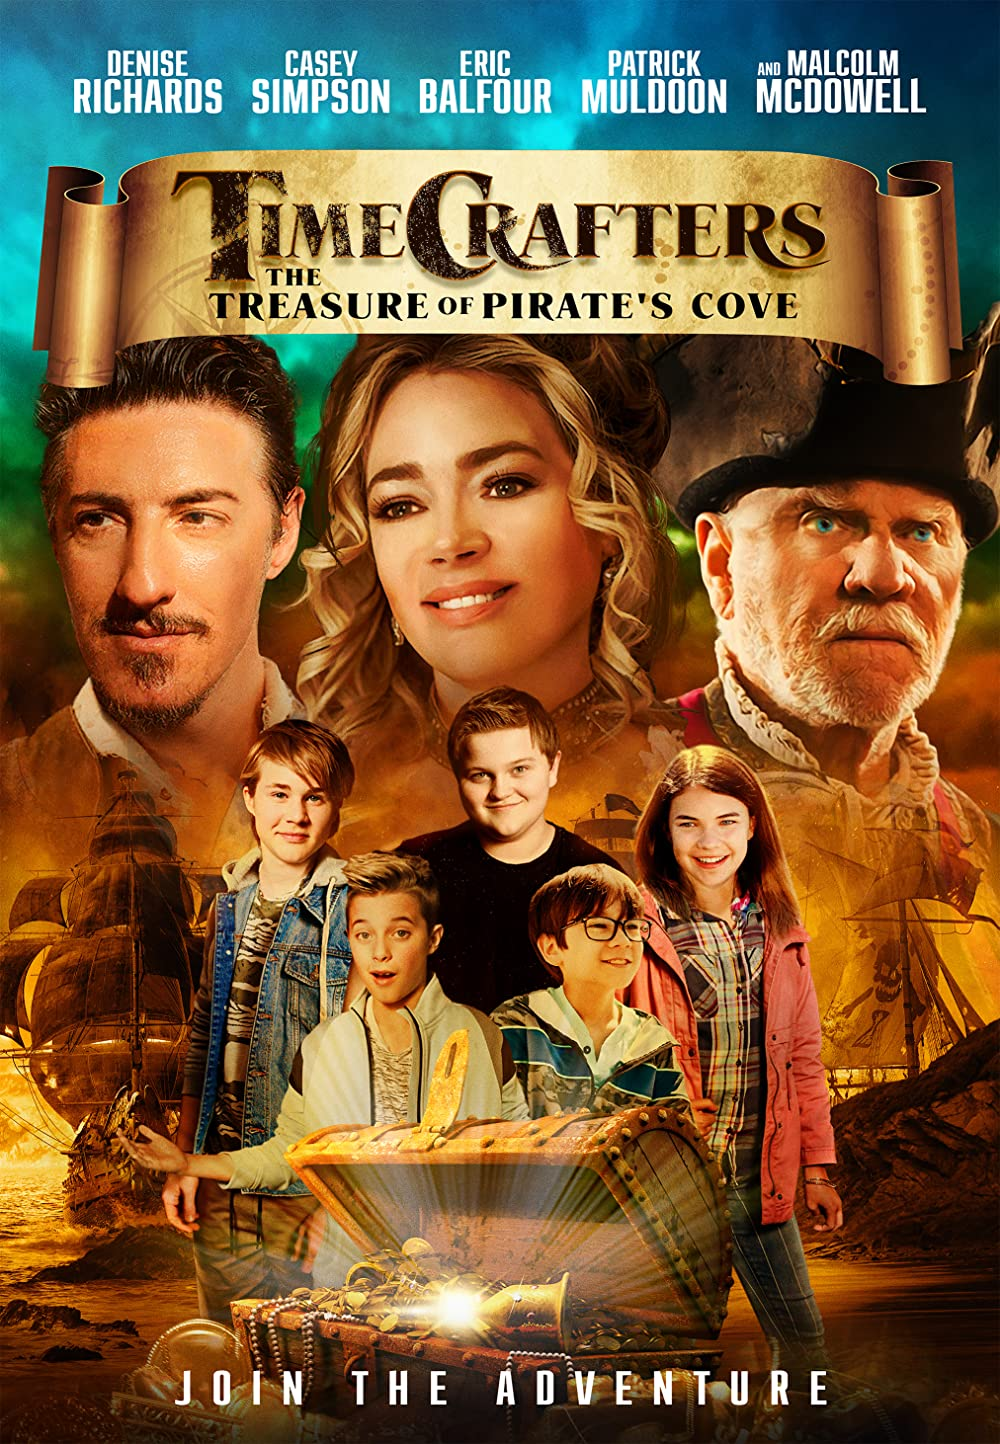 Timecrafters The Treasure of Pirate's Cove 2021 English 293MB HDRip Download